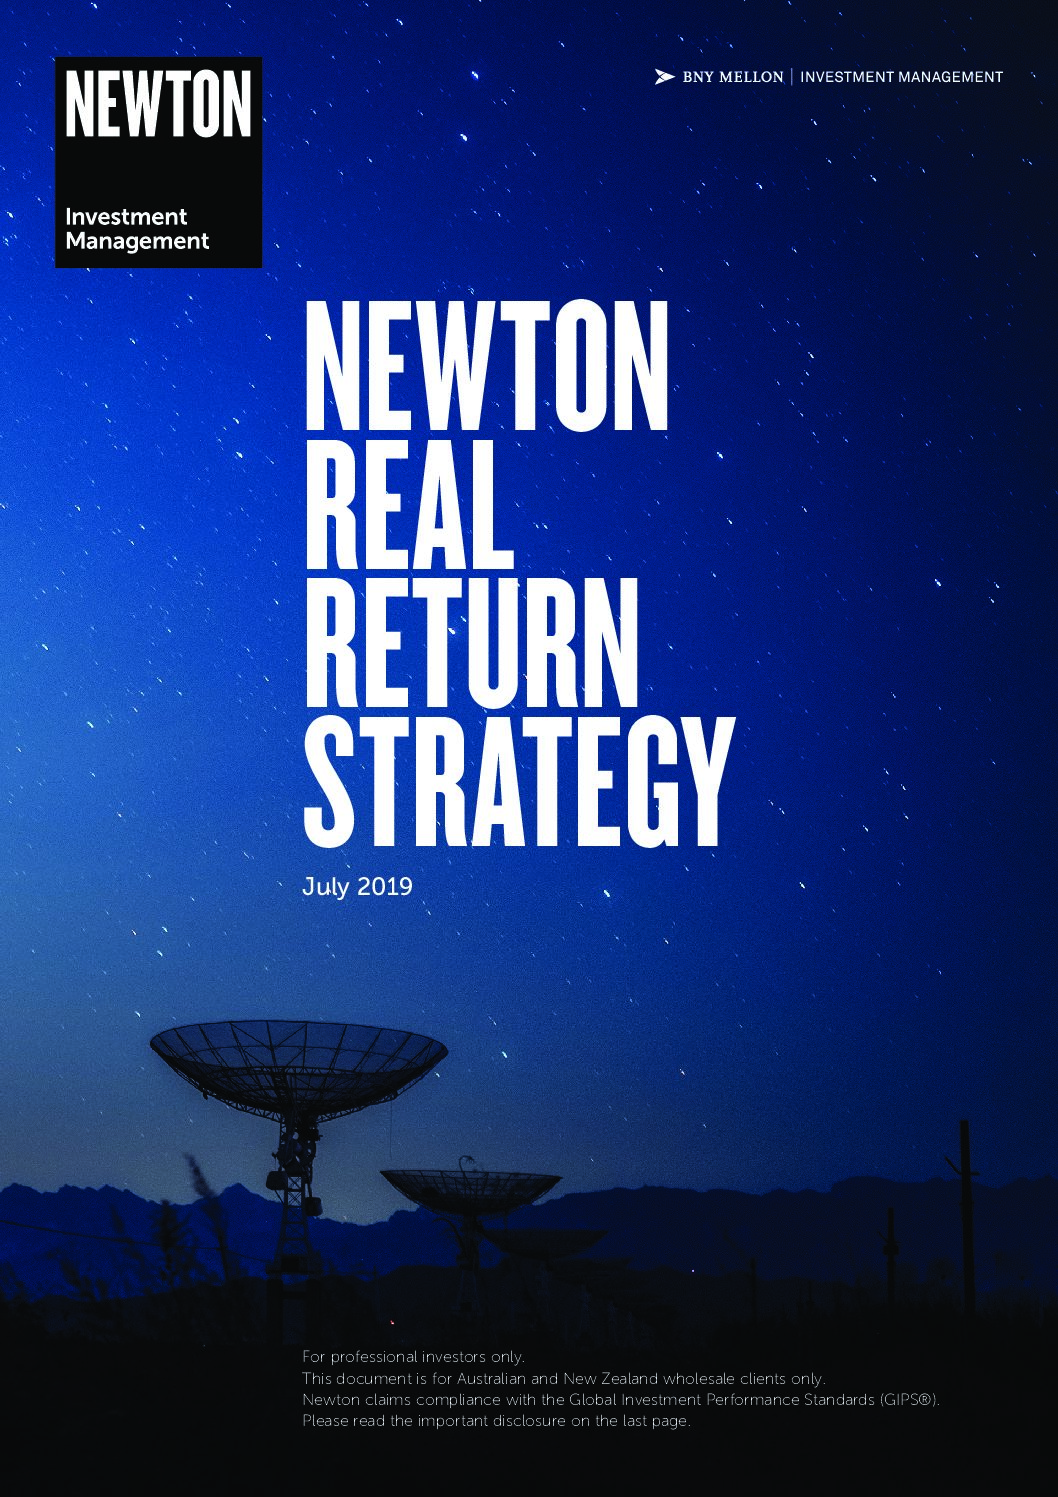 AUS Real return brochure